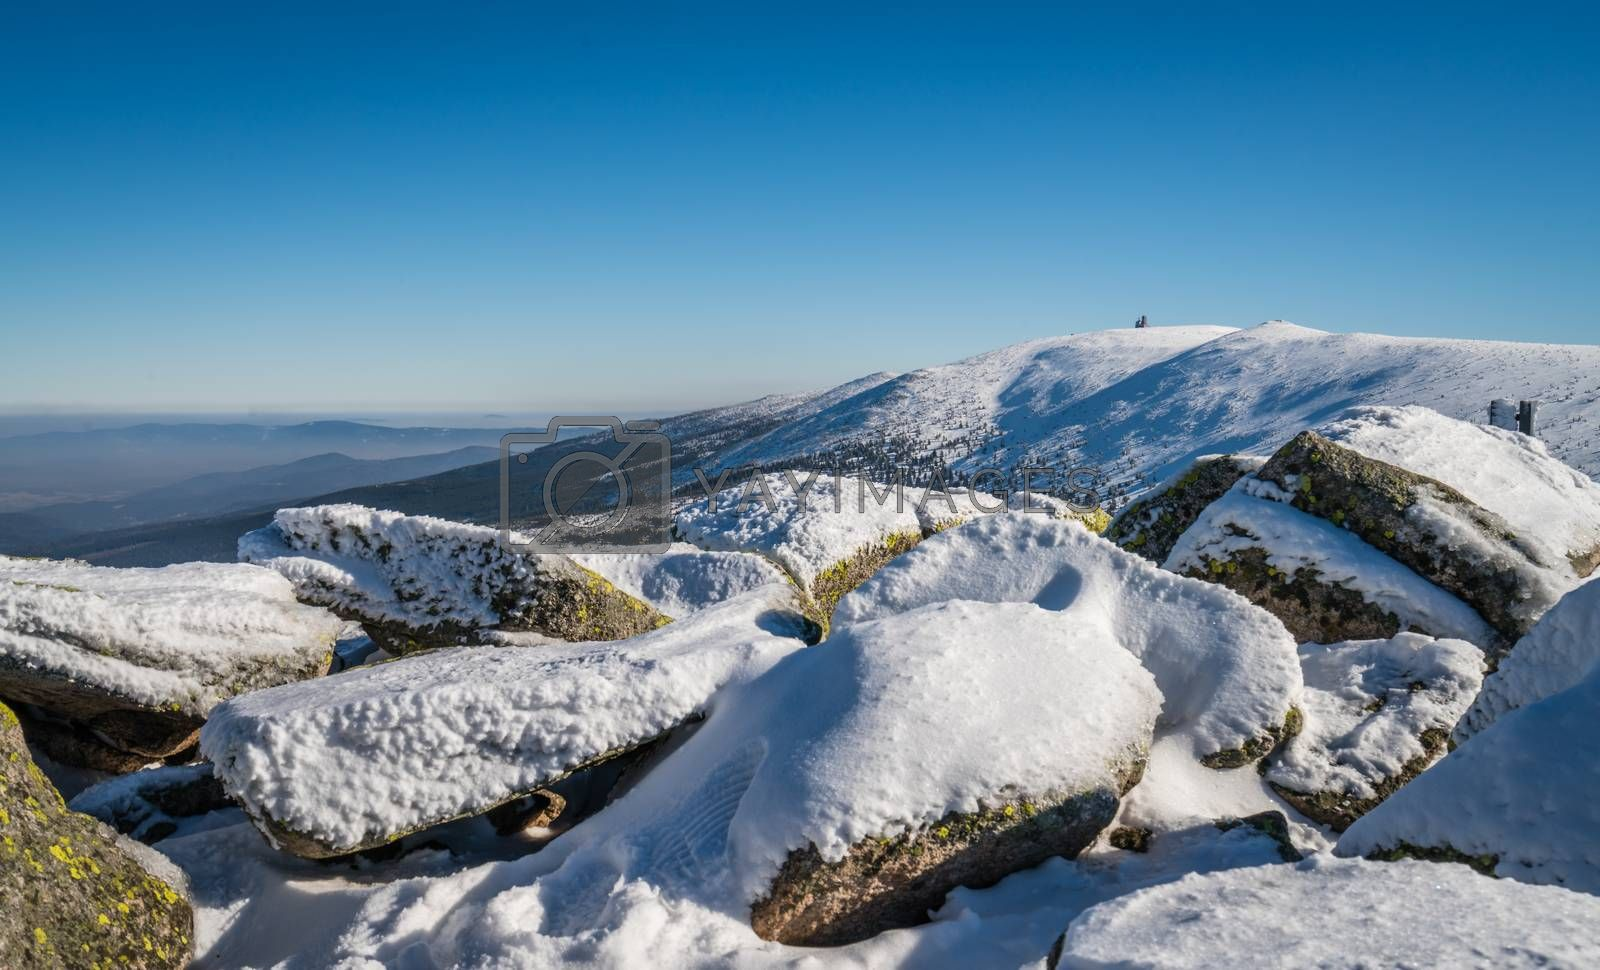 Large rocks in the foreground of a winter landscape of a Karkonosze mountains as seen from the Szrenica mountain, Poland